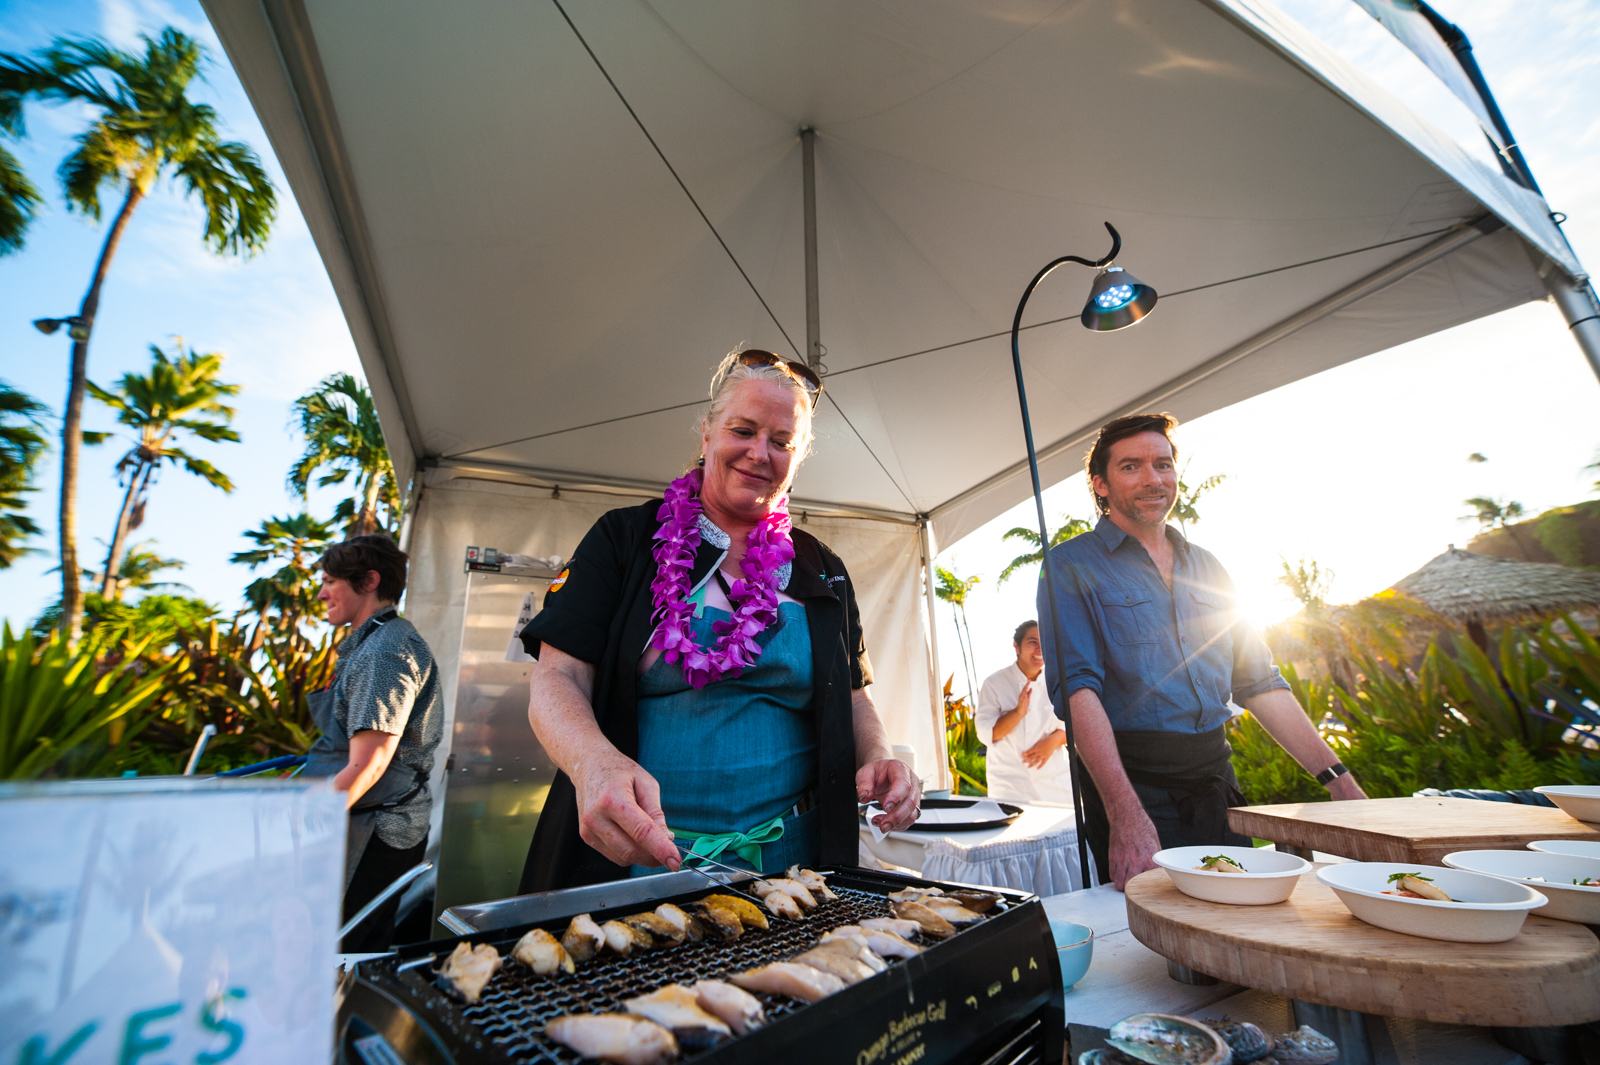 San Francisco chef Nancy Oakes grills local abalone at the Hawaii Food and Wine Festival on Maui.